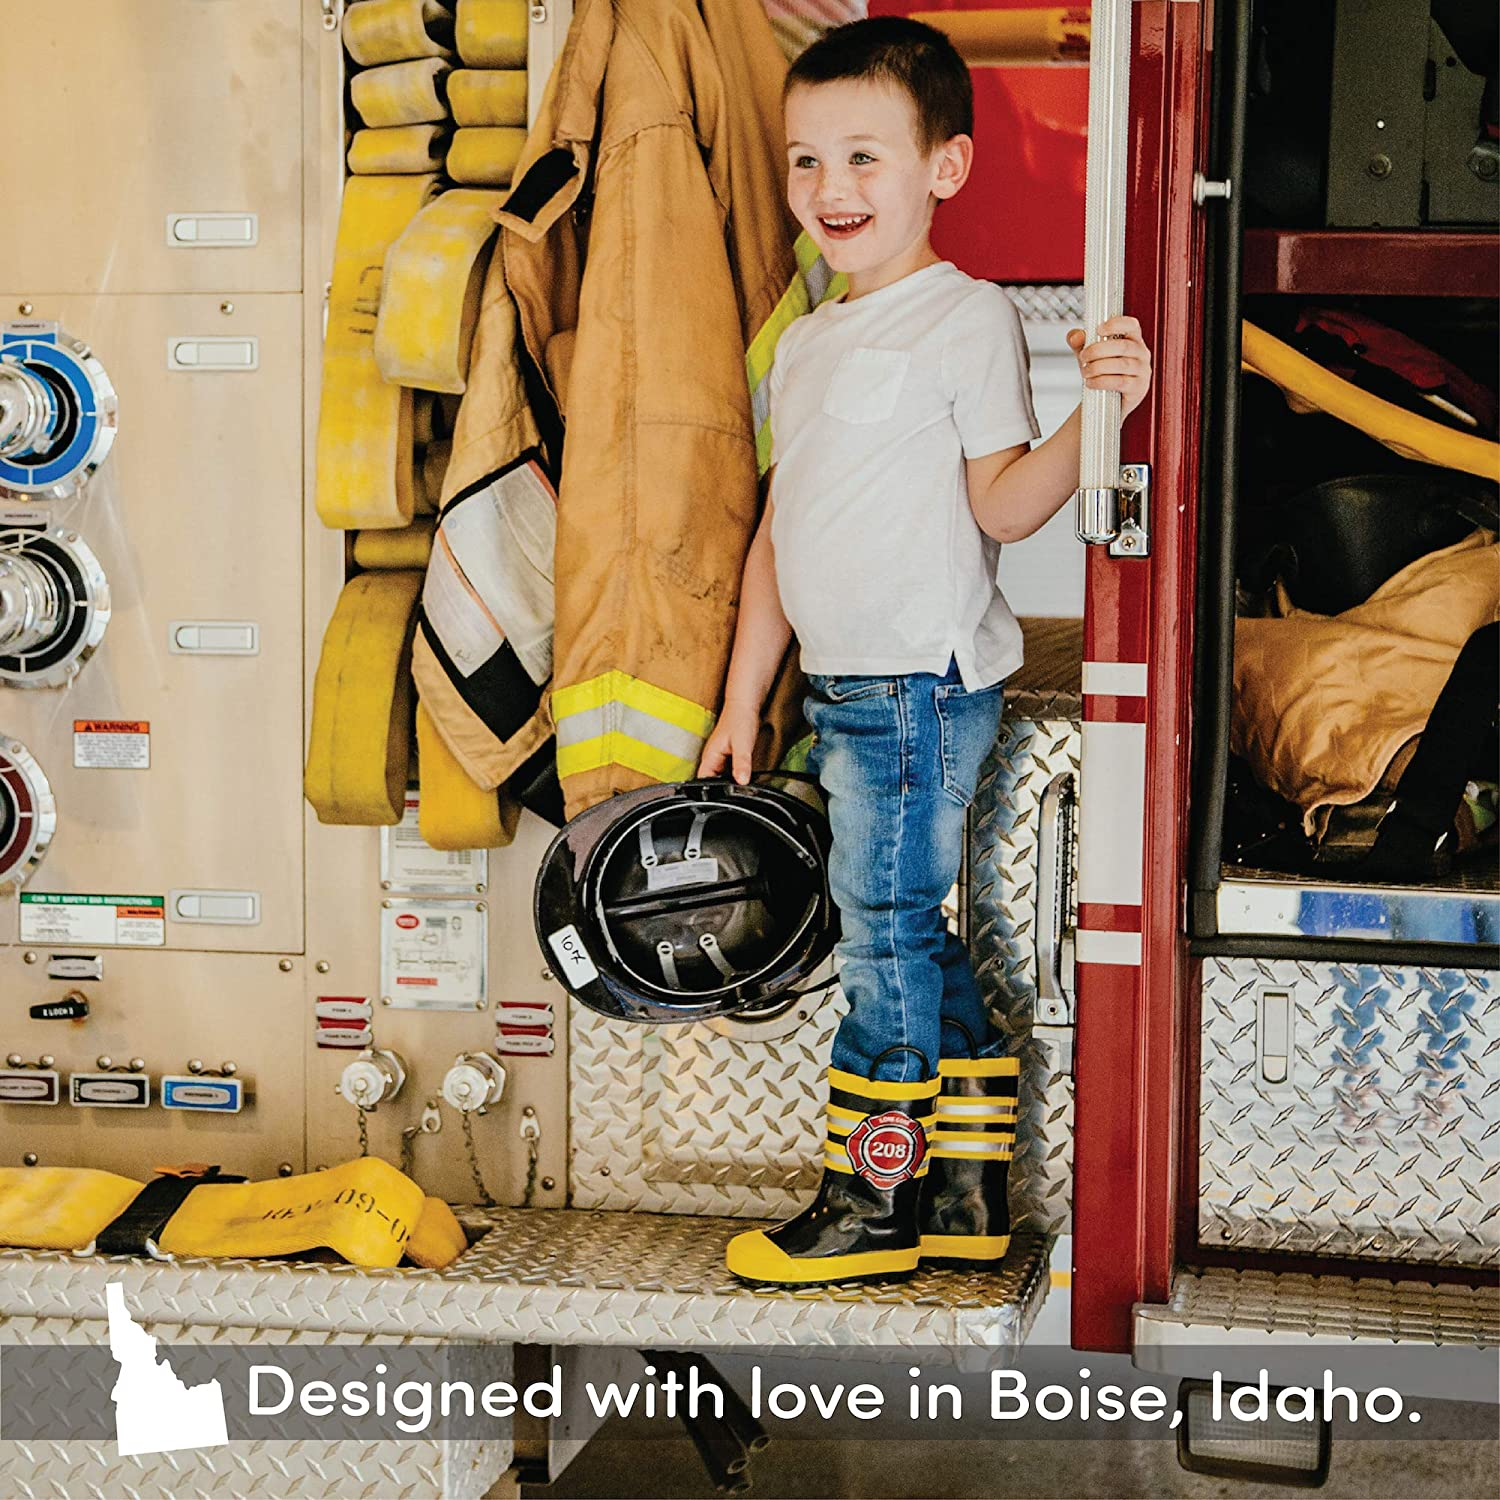 LONECONE Rain Boots with Easy-On Handles in Fun Patterns for Toddlers and Kids 12 Little Kid Fire Chief